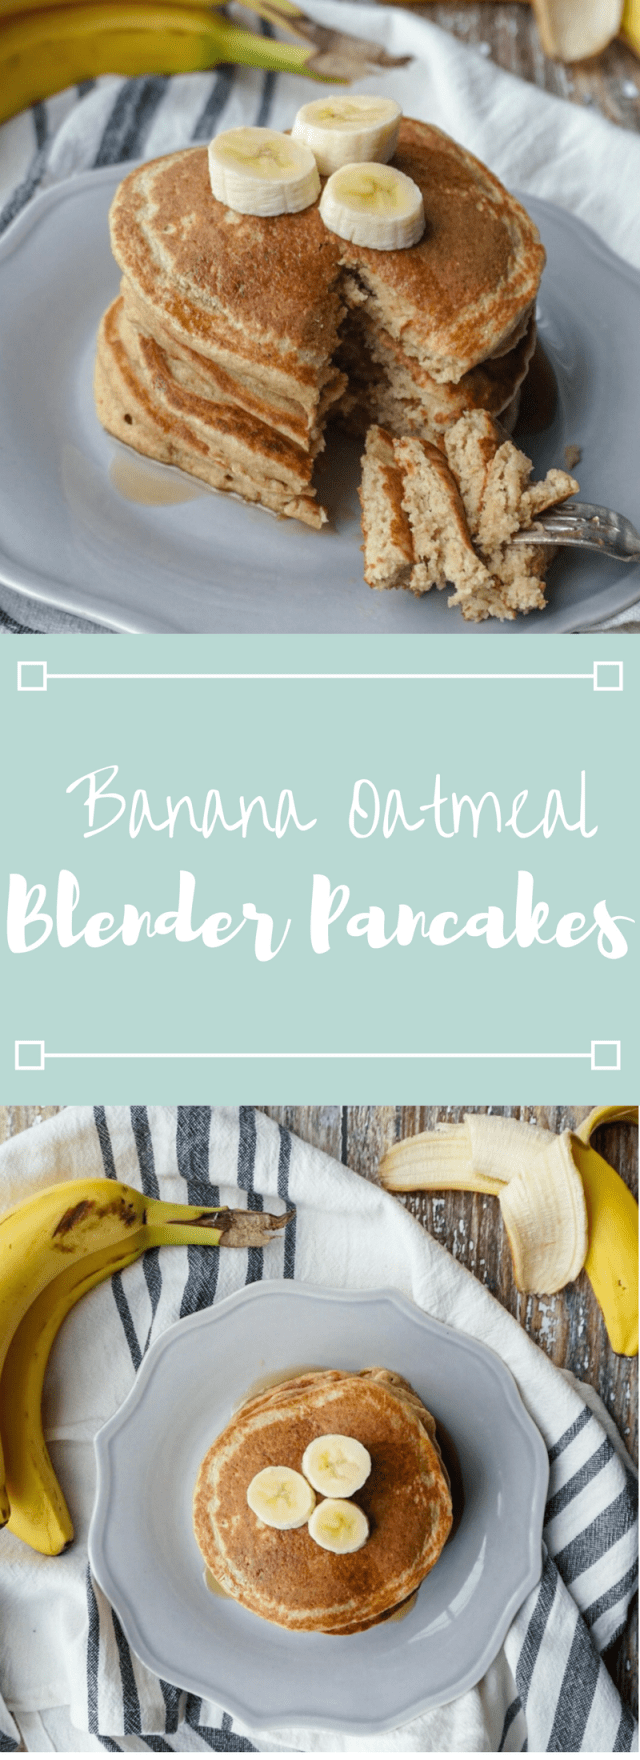 Healthy Banana Oatmeal Blender Pancakes